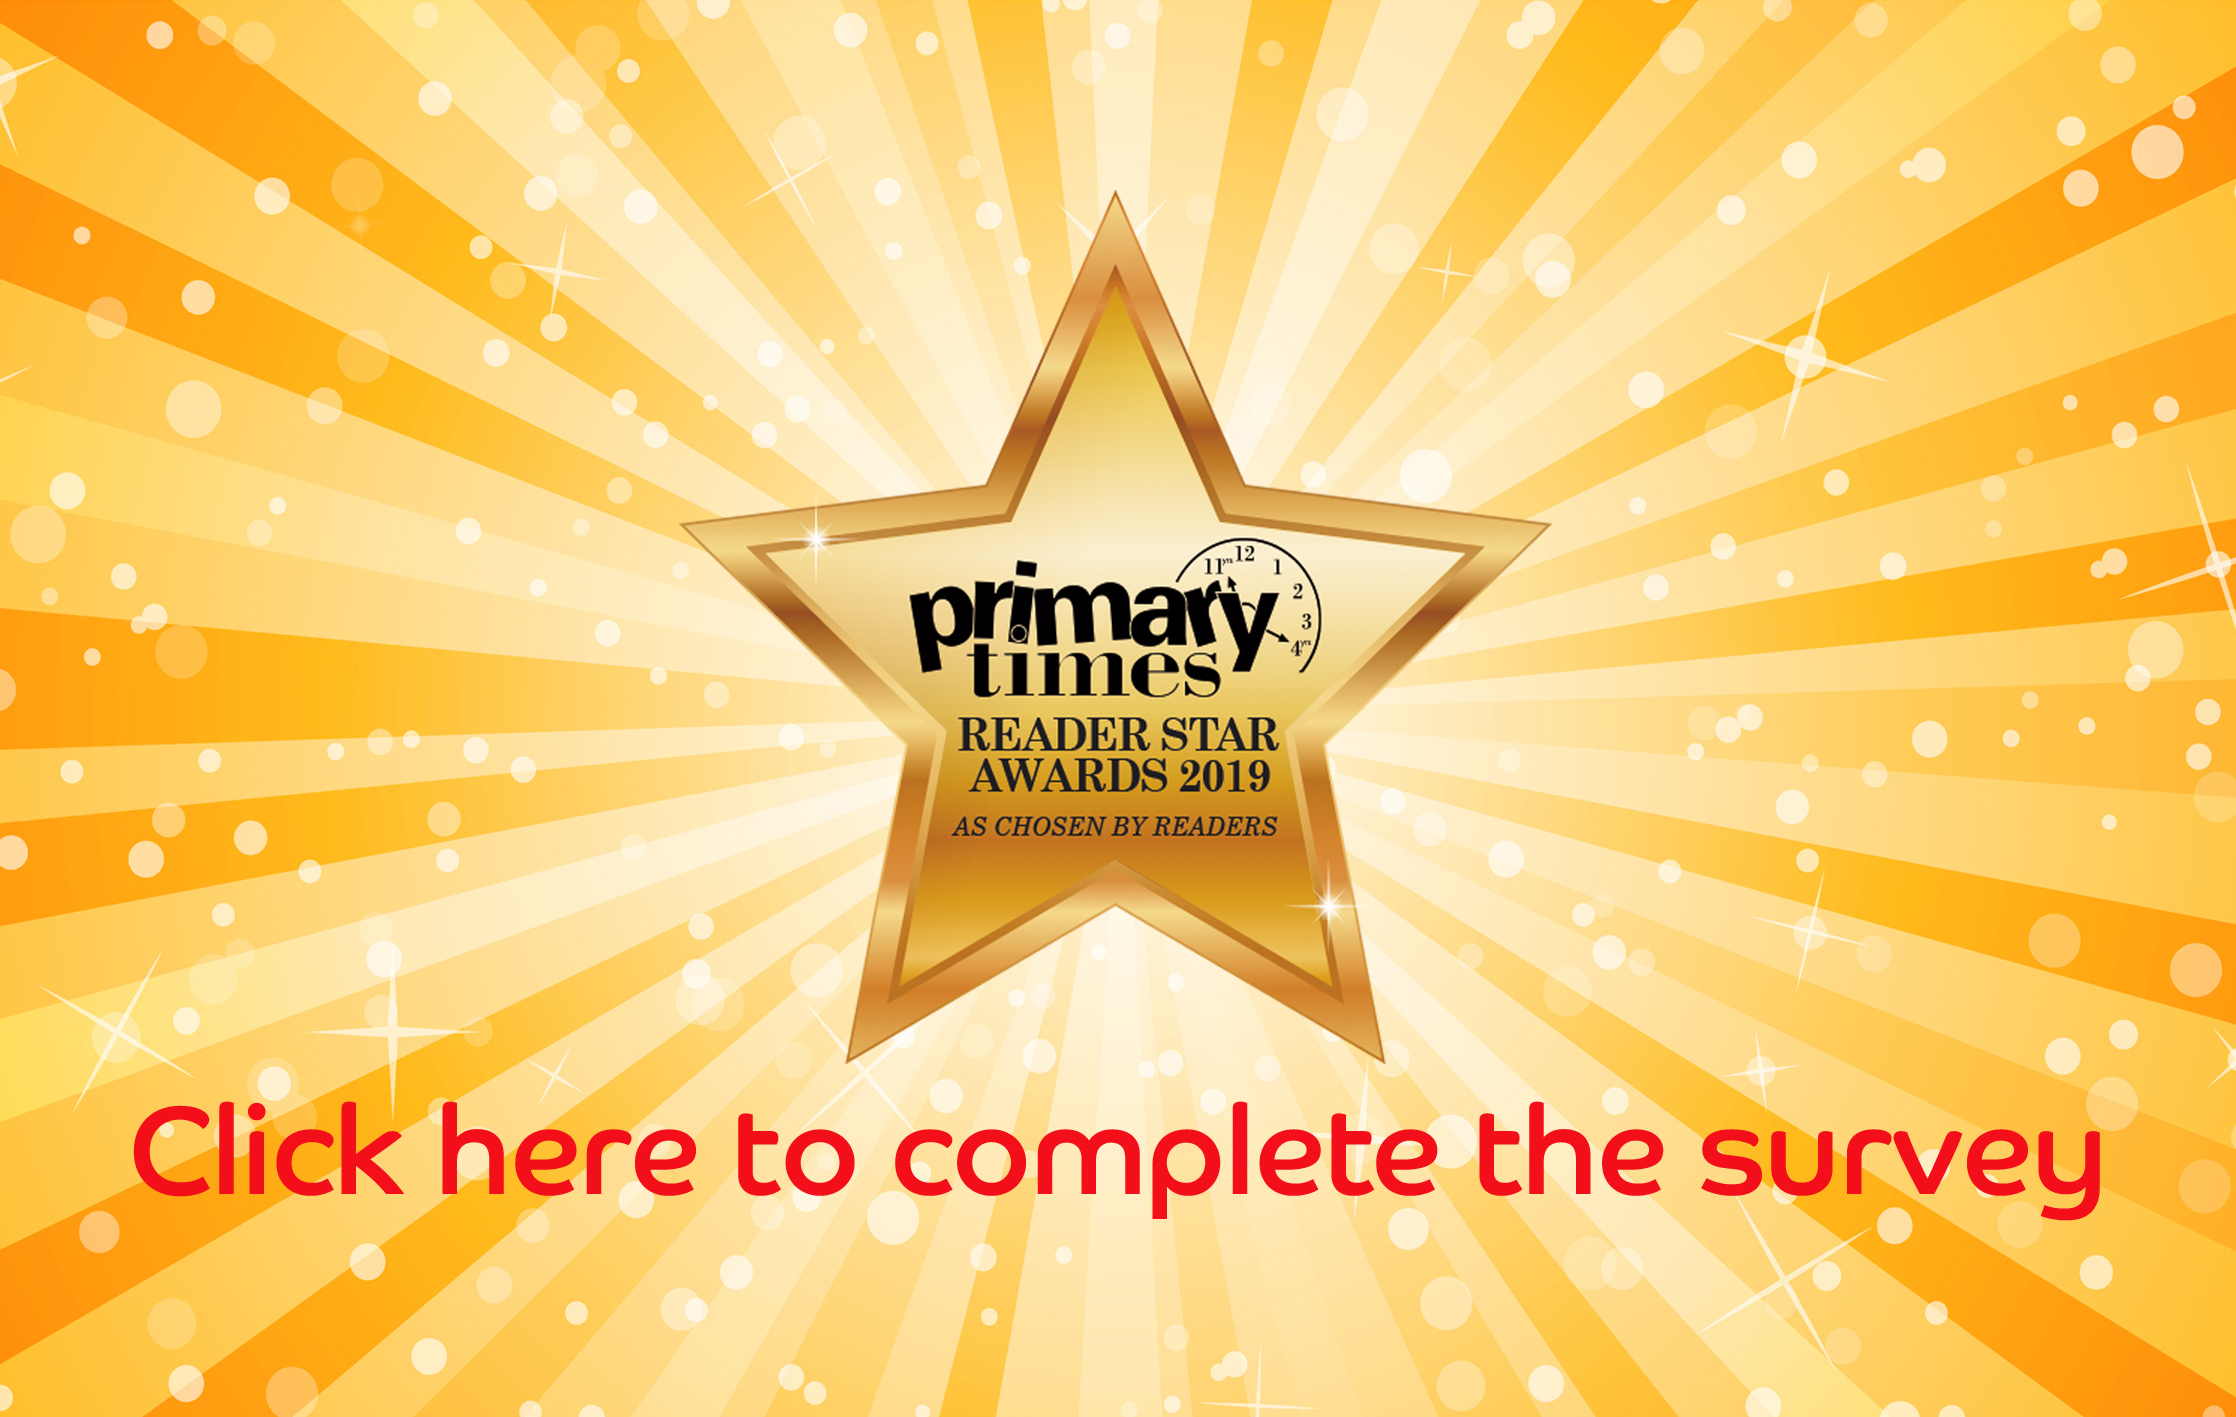 Primary Times Dorset Reader Star Awards 2019